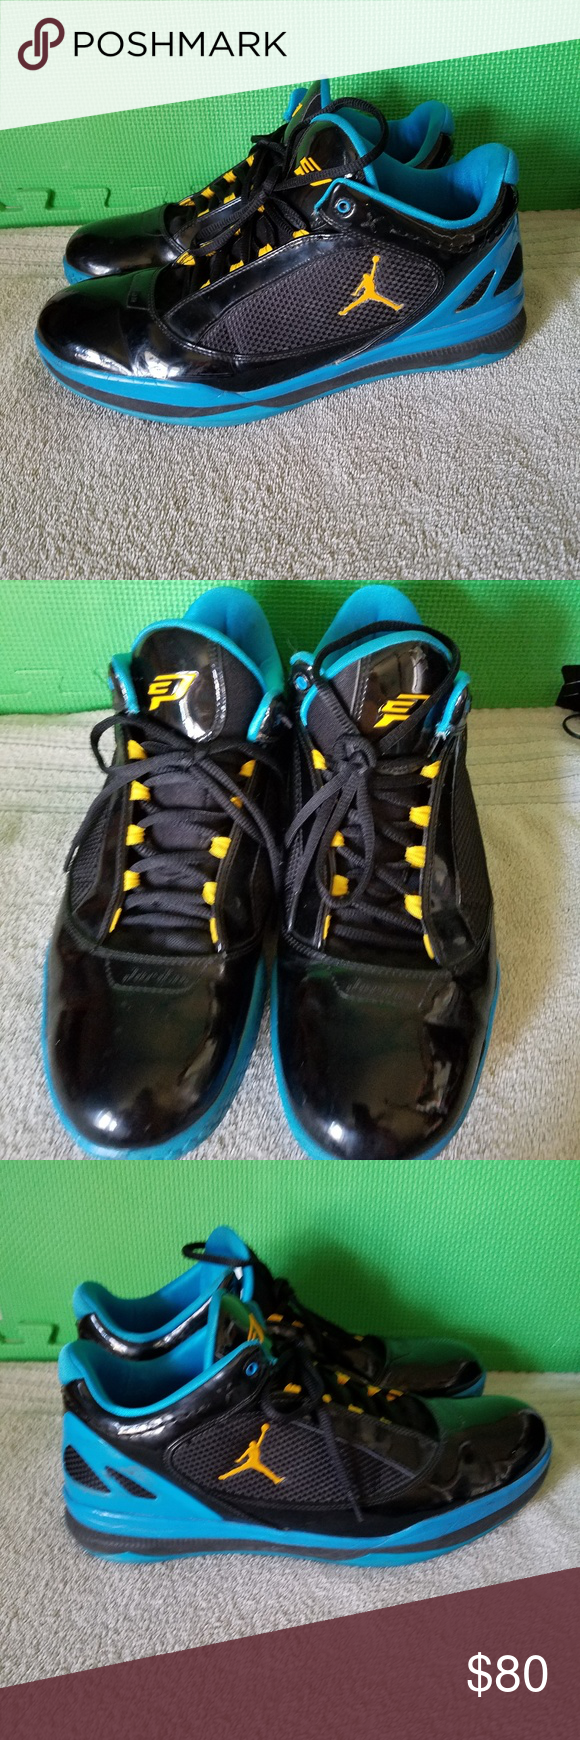 c64a4624f01 Nike Jordan Chris Paul 2 Quick Basketball Shoes Size 13. Good overall  condition